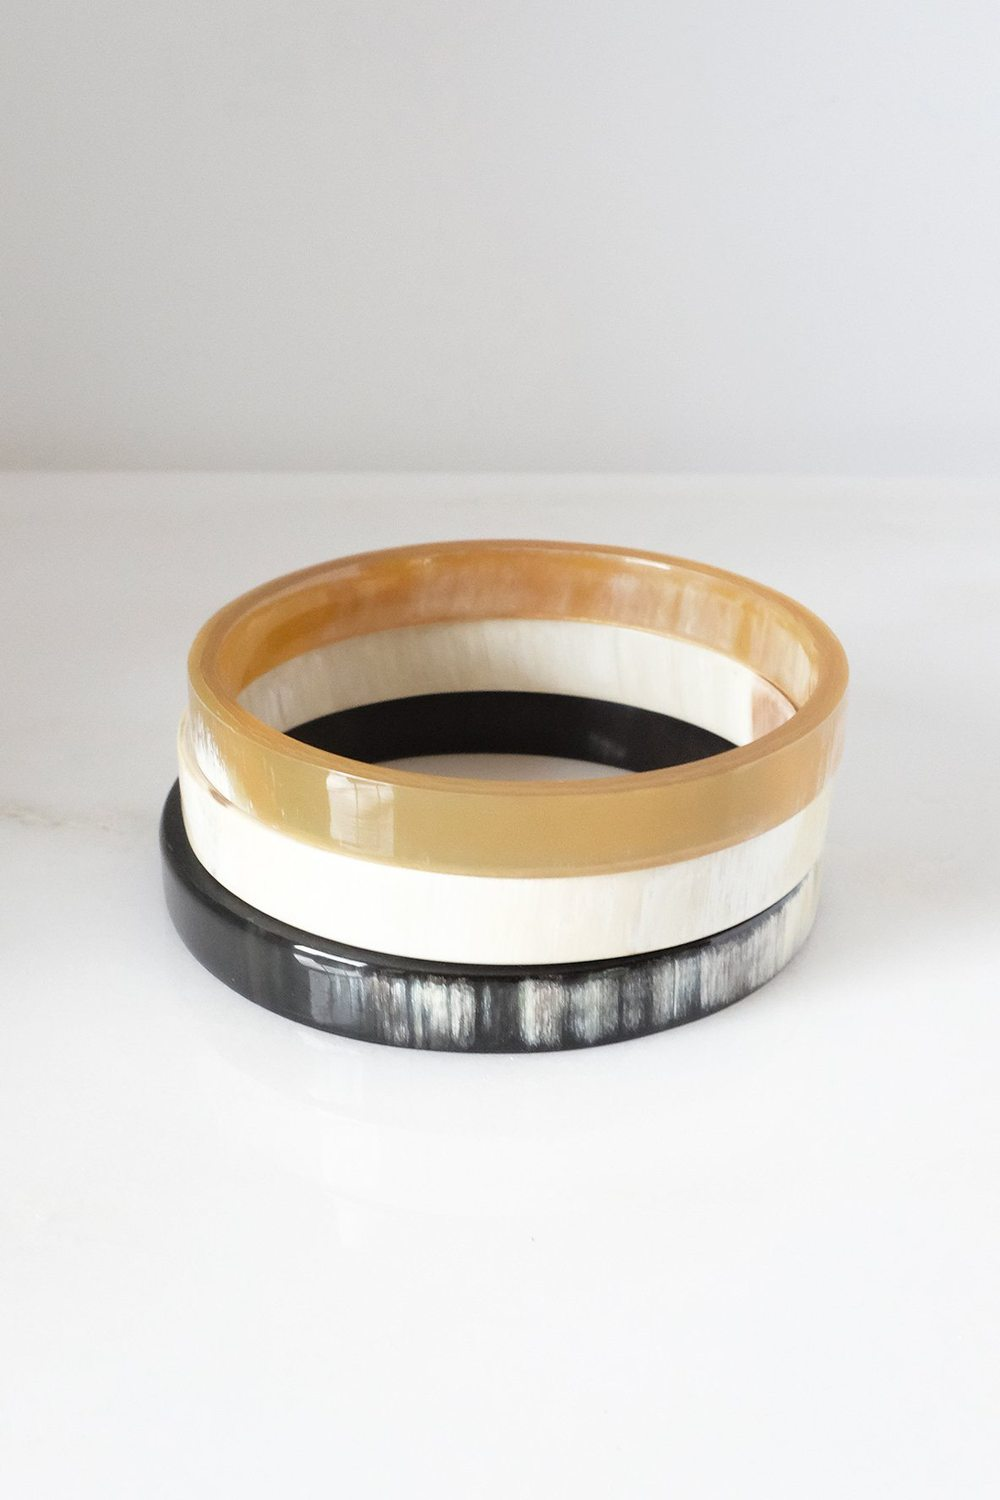 Tron Buffalo Horn Minimalist Bangle Bracelet (1pc)